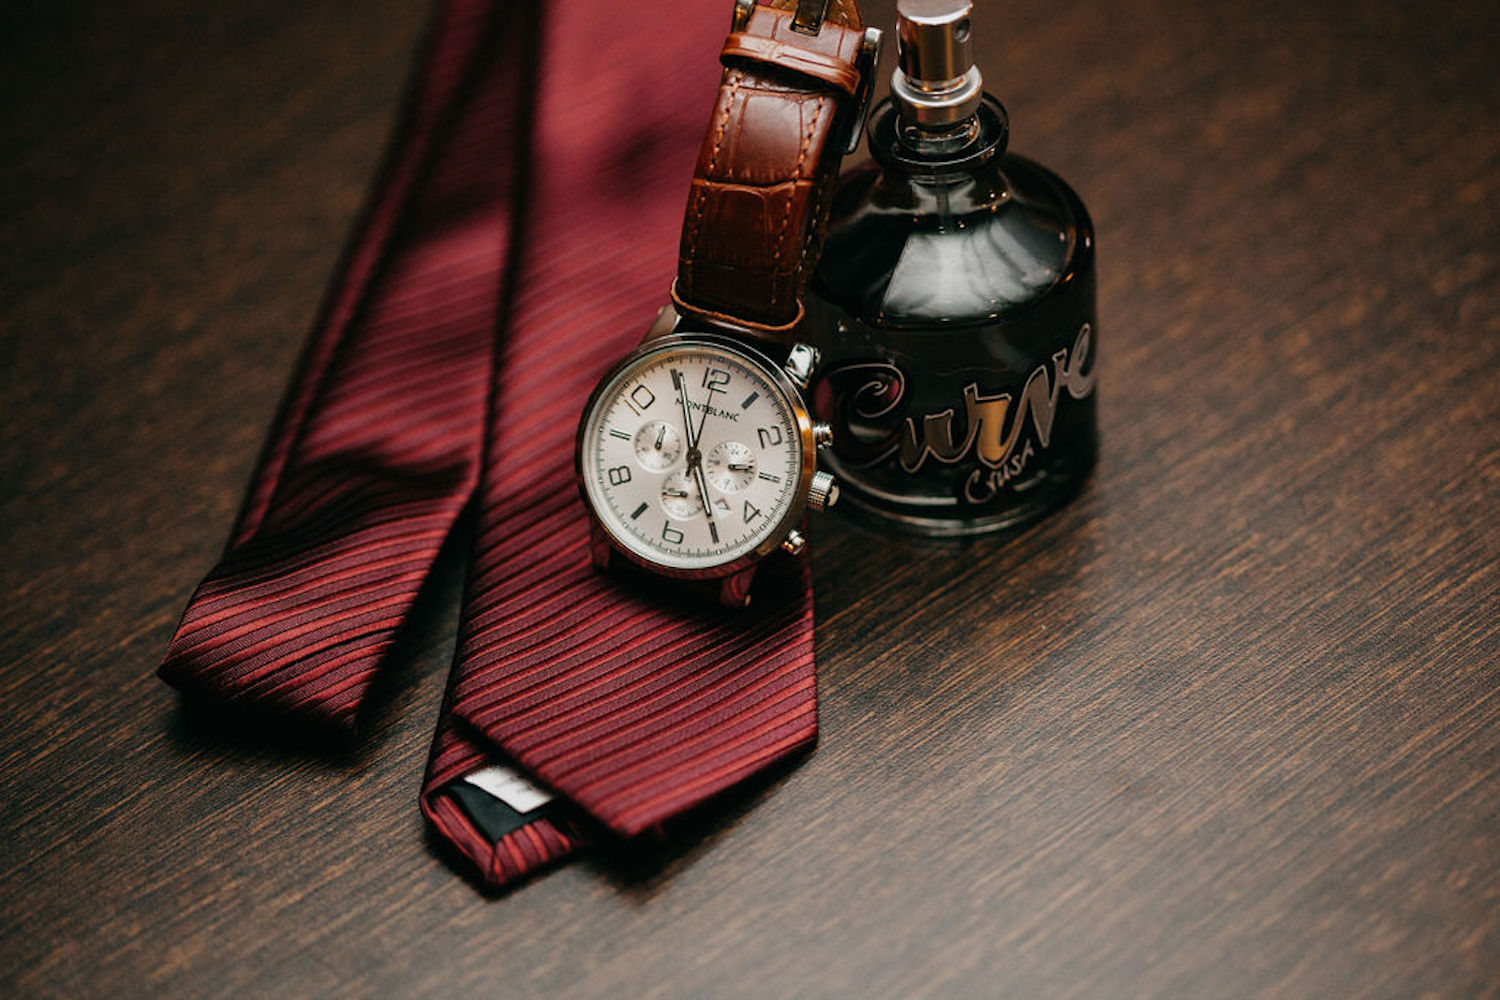 Grooms tie, watch and cologne